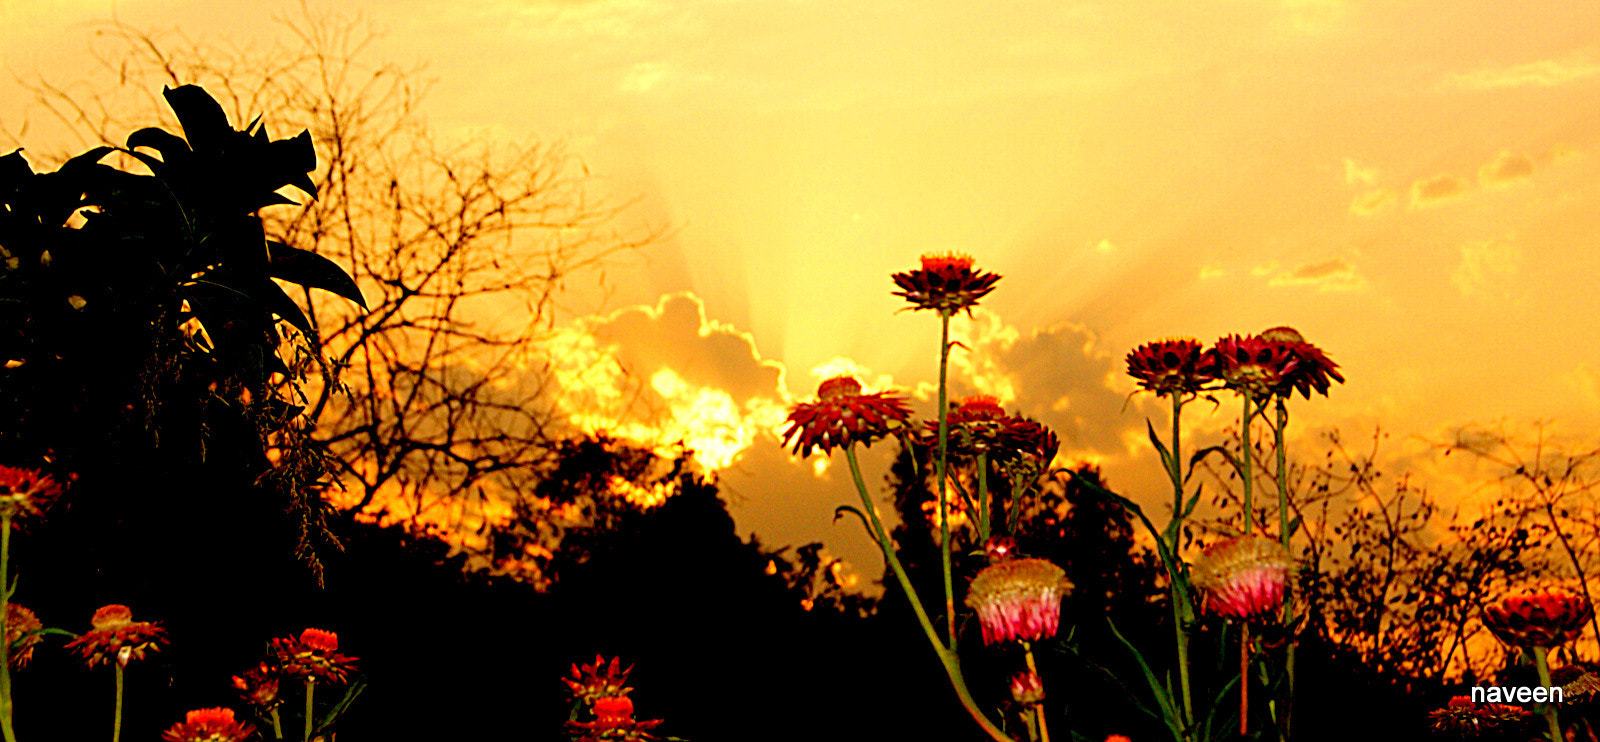 Photograph Sunsetting over flowers by naveen sharma on 500px